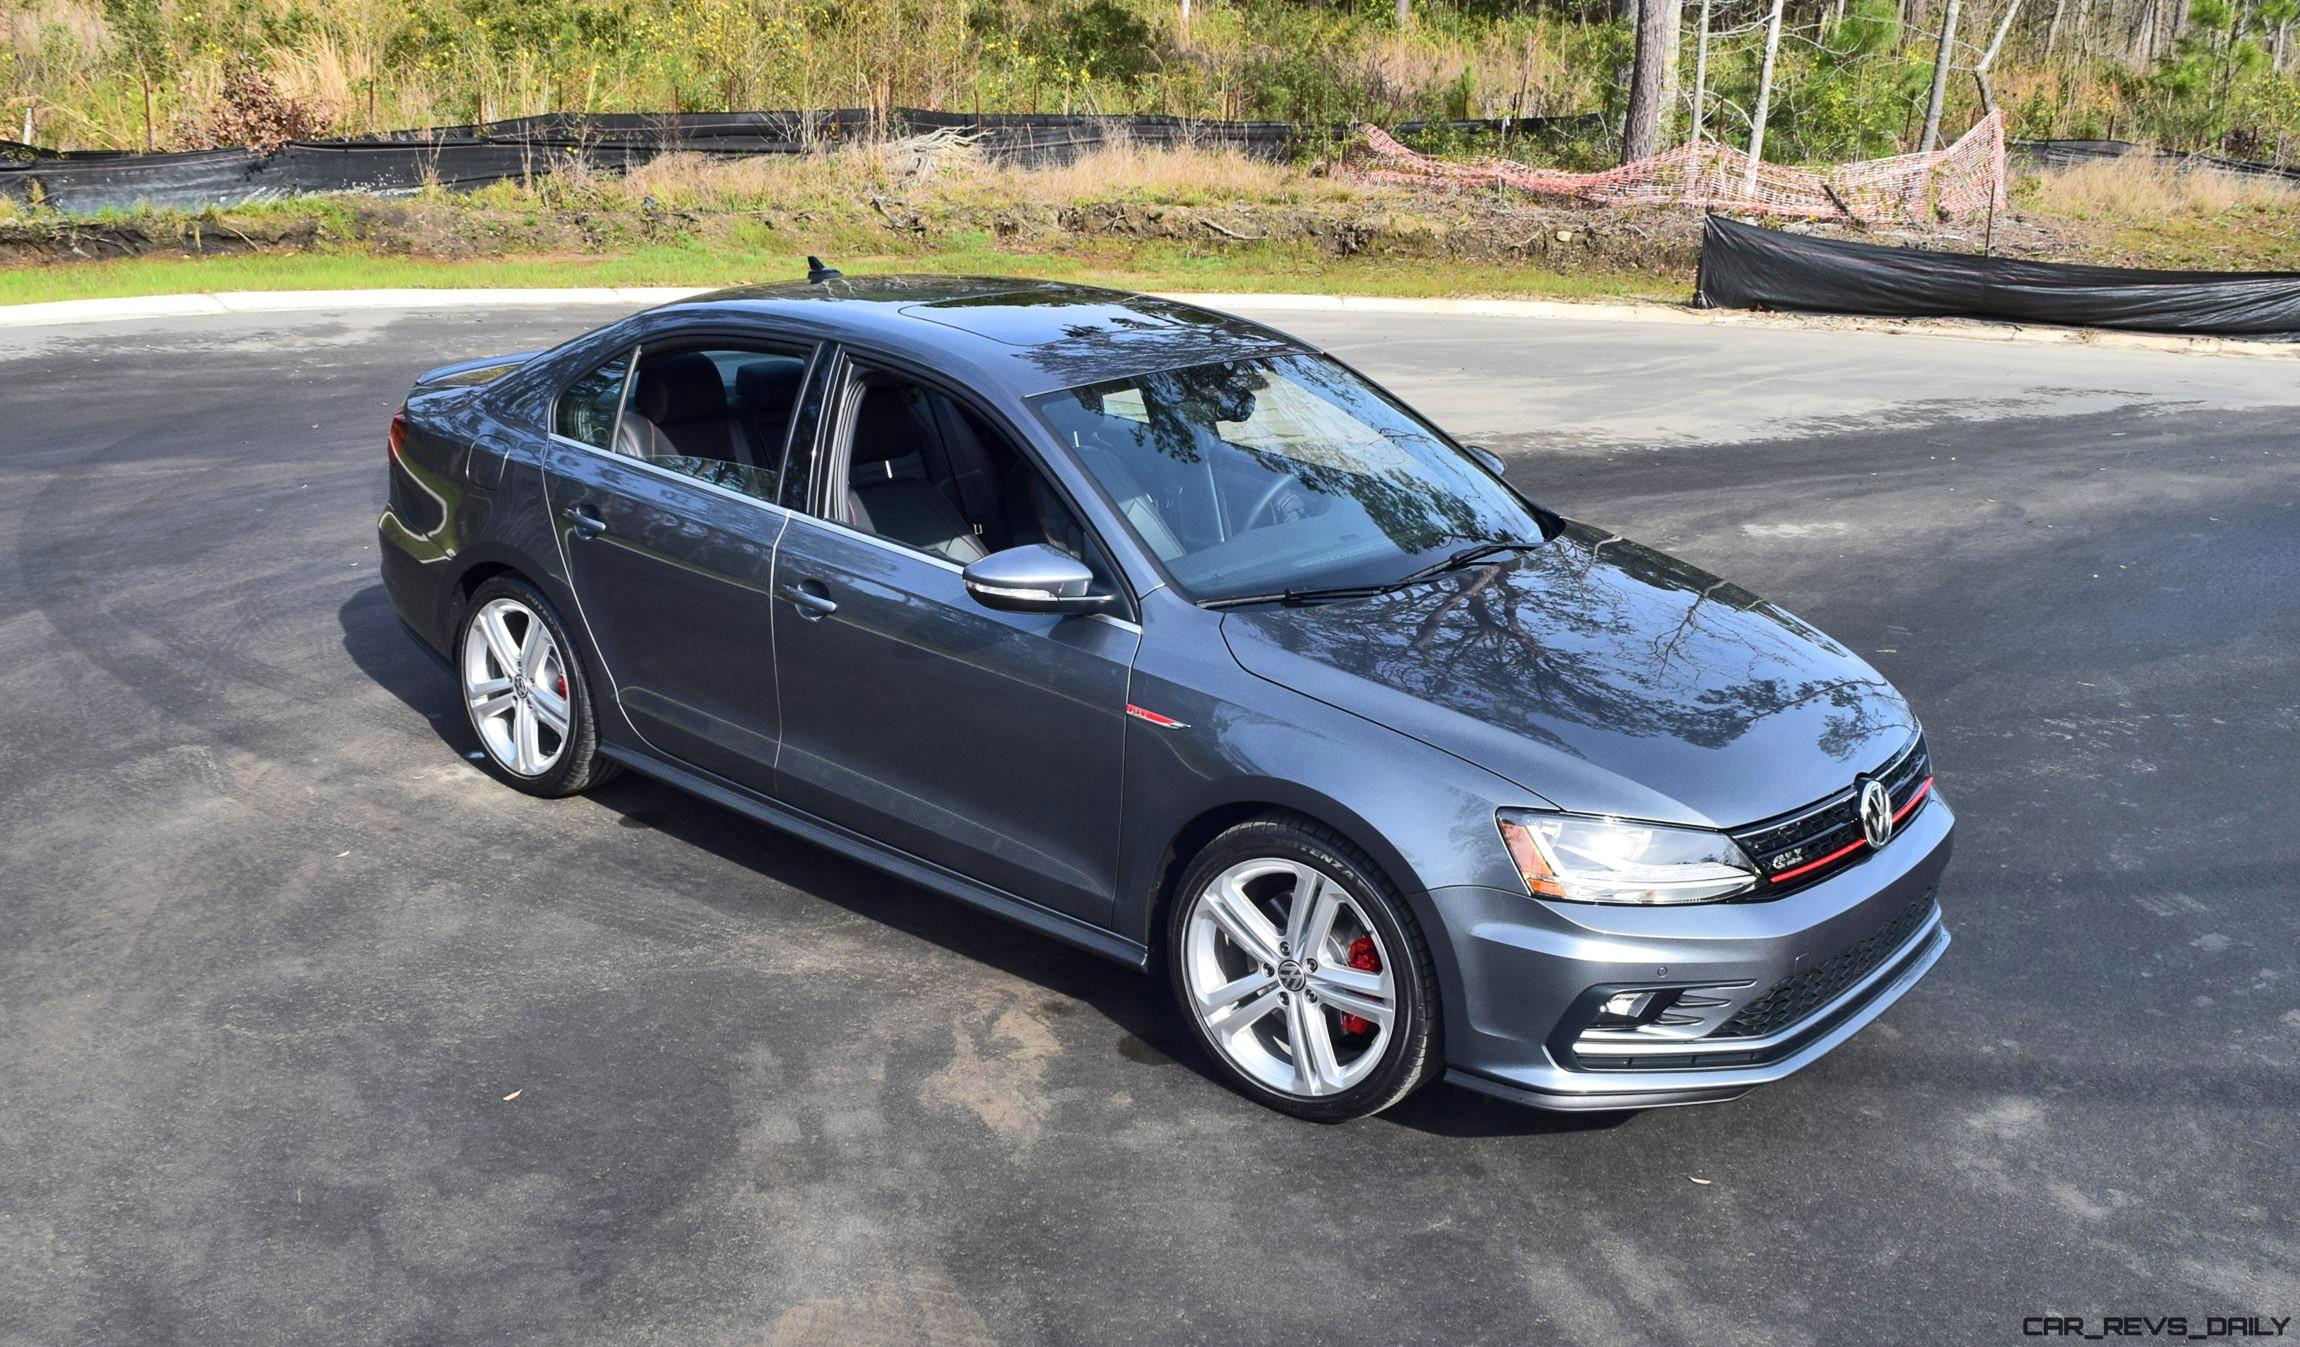 2017 VW Jetta GLI DSG Automatic - HD Road Test Review